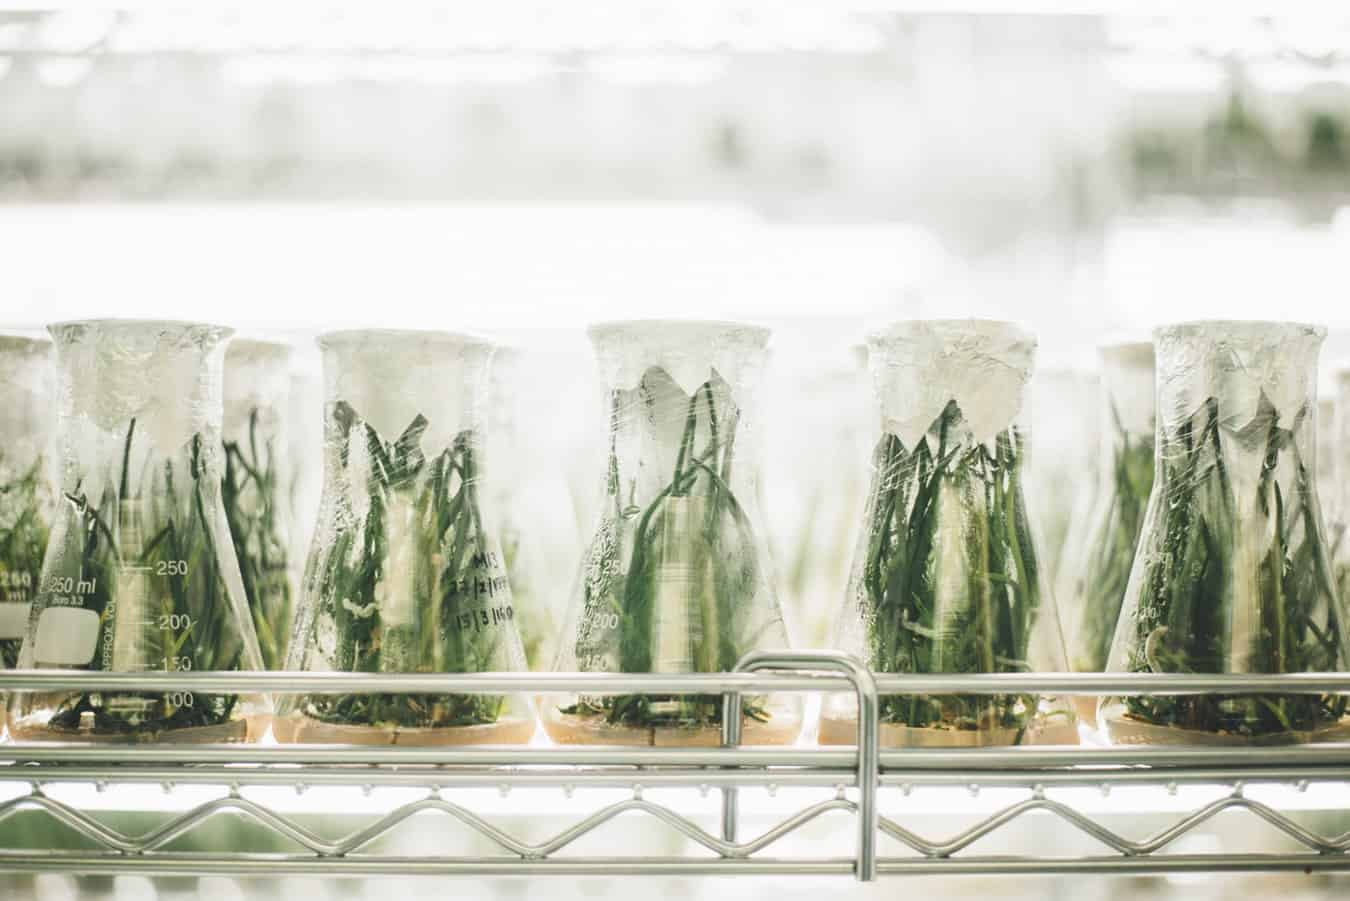 A shelf of glass beakers containing plants